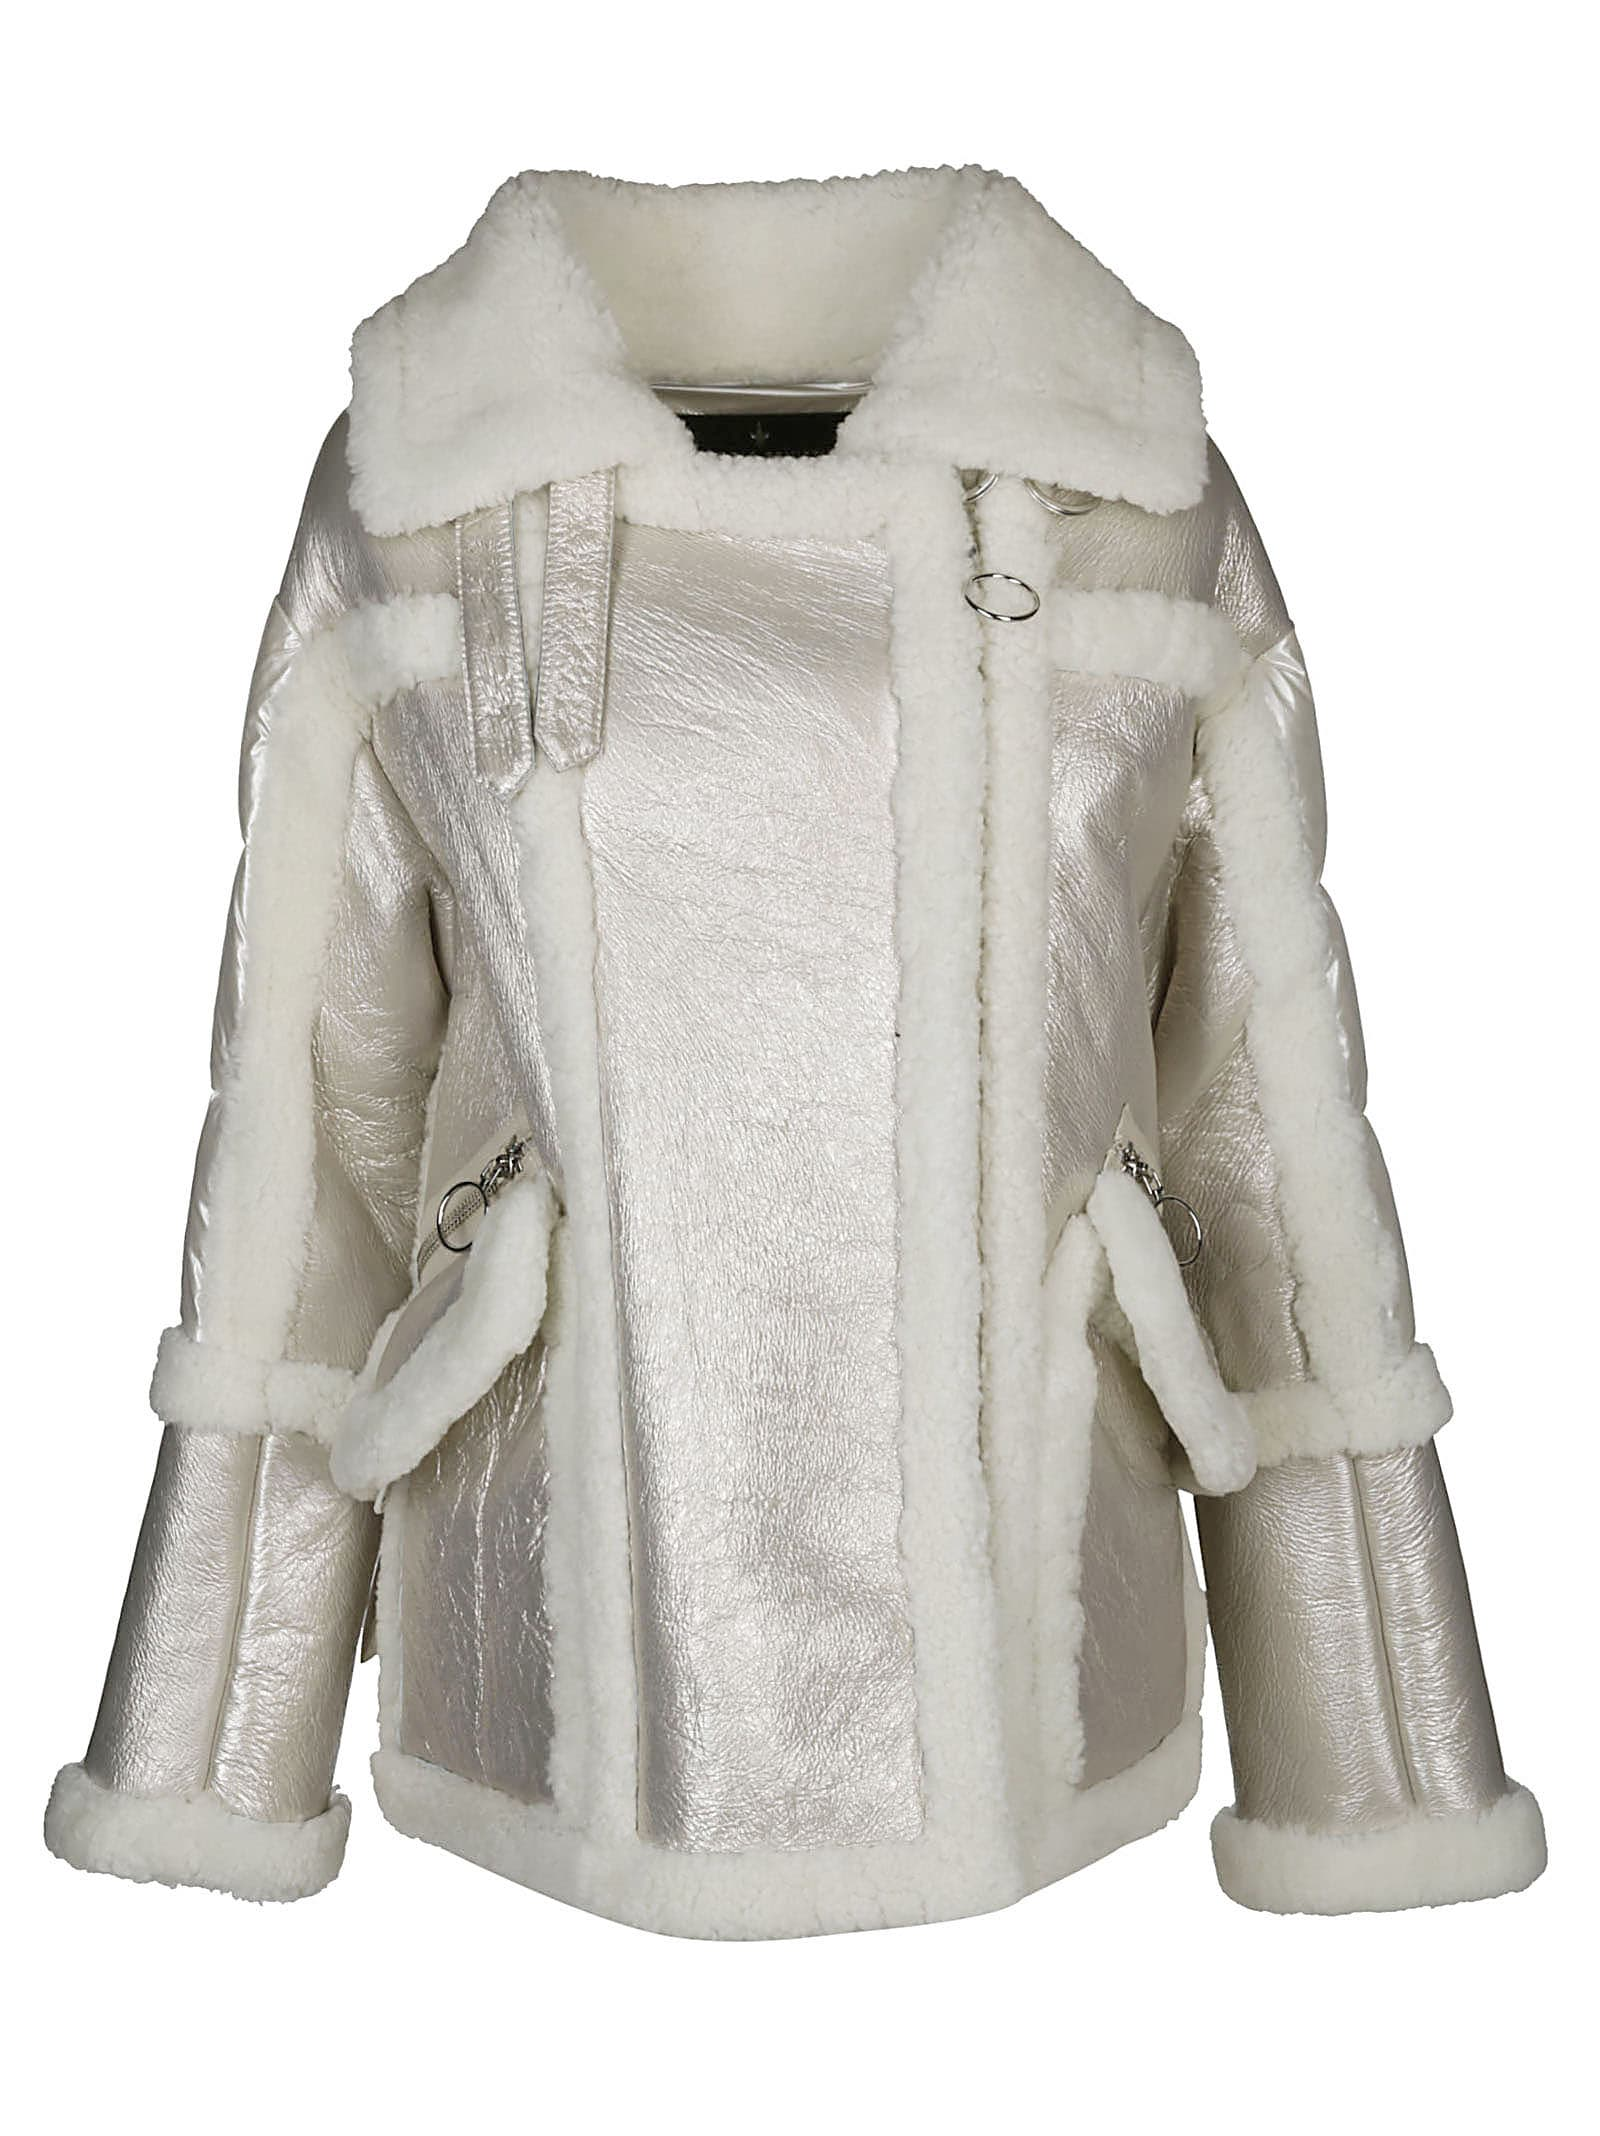 Nicole Benisti Montaign Shearing-trim Jacket